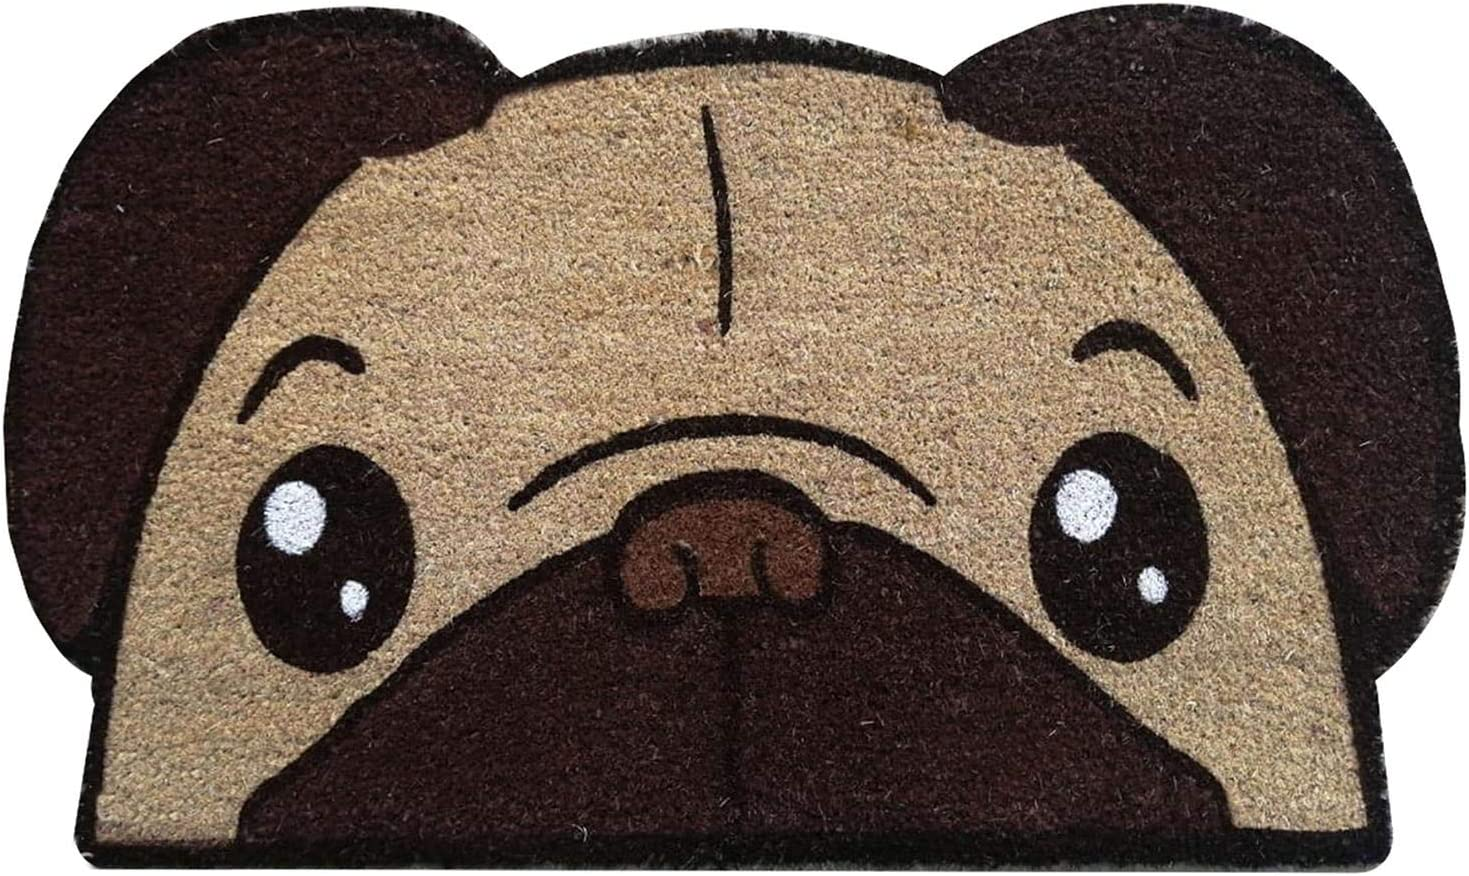 Puckator Doormat Height OFFicial store 1.5cm Width 45cm Credence 76cm Depth Colourful